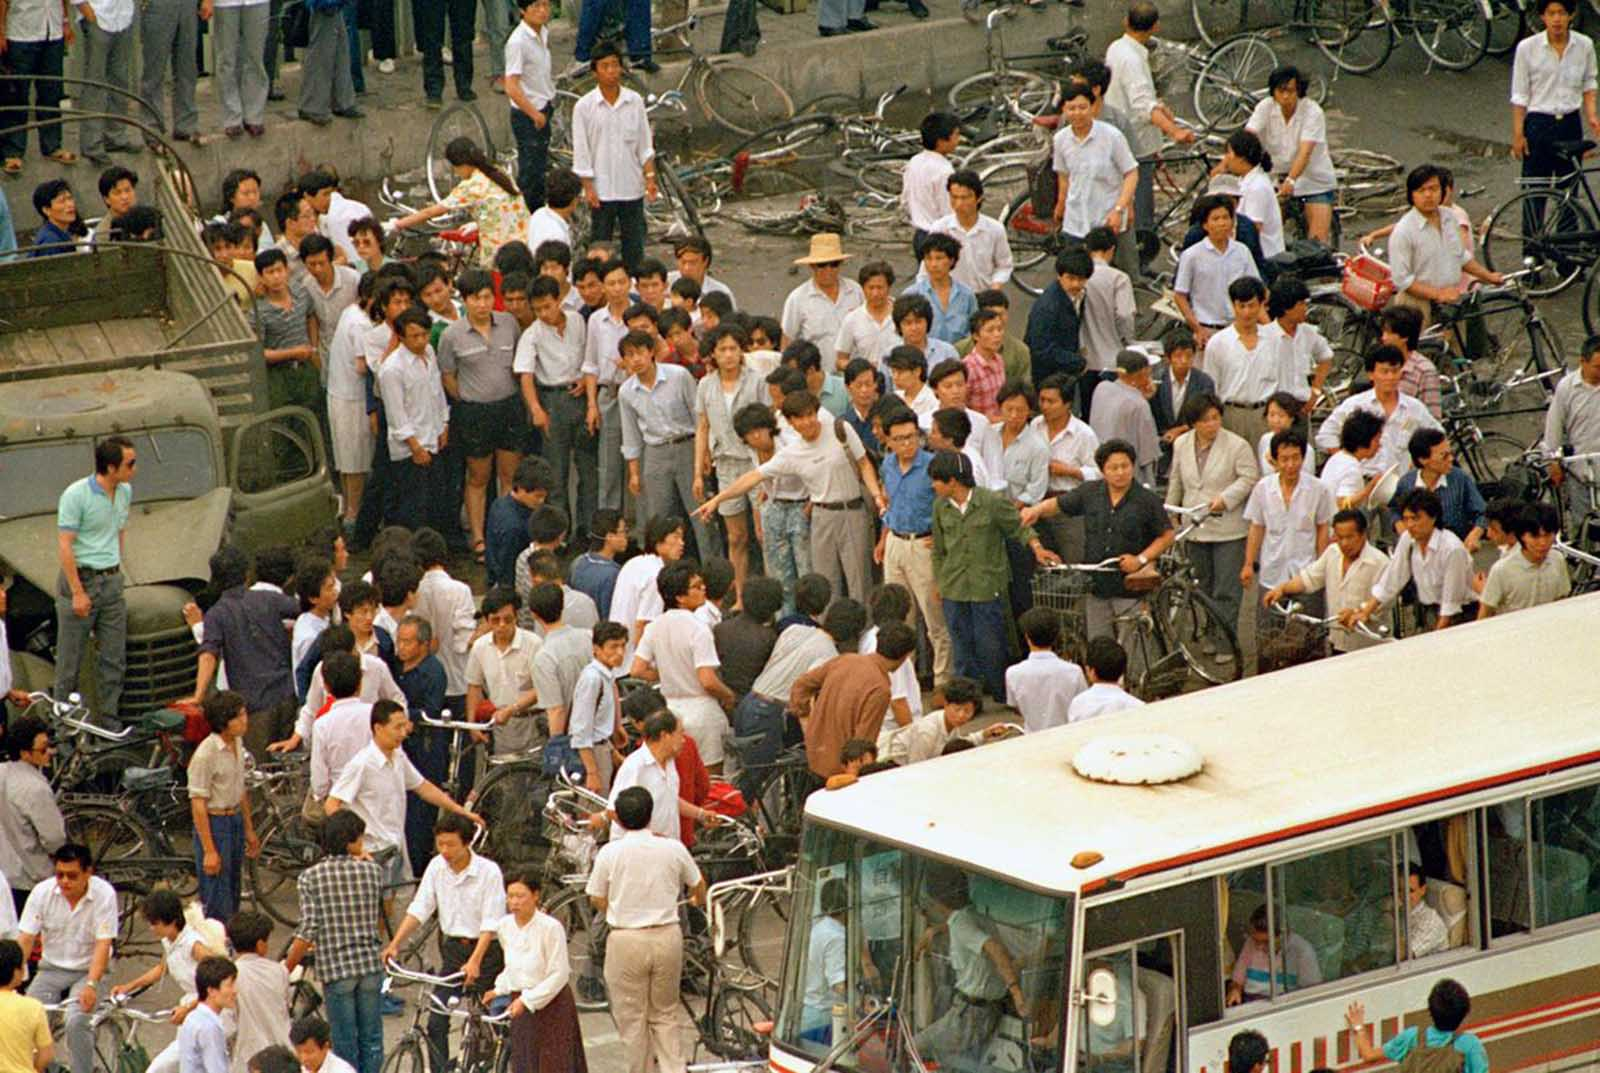 A crowd of Chinese clears a path to give a busload of foreign tourists a view of a dead body of victim of the first night of violence as People's Liberation Army troops shot their way into Tiananmen Square to crush pro-democracy protests, on Monday morning, June 5, 1989.